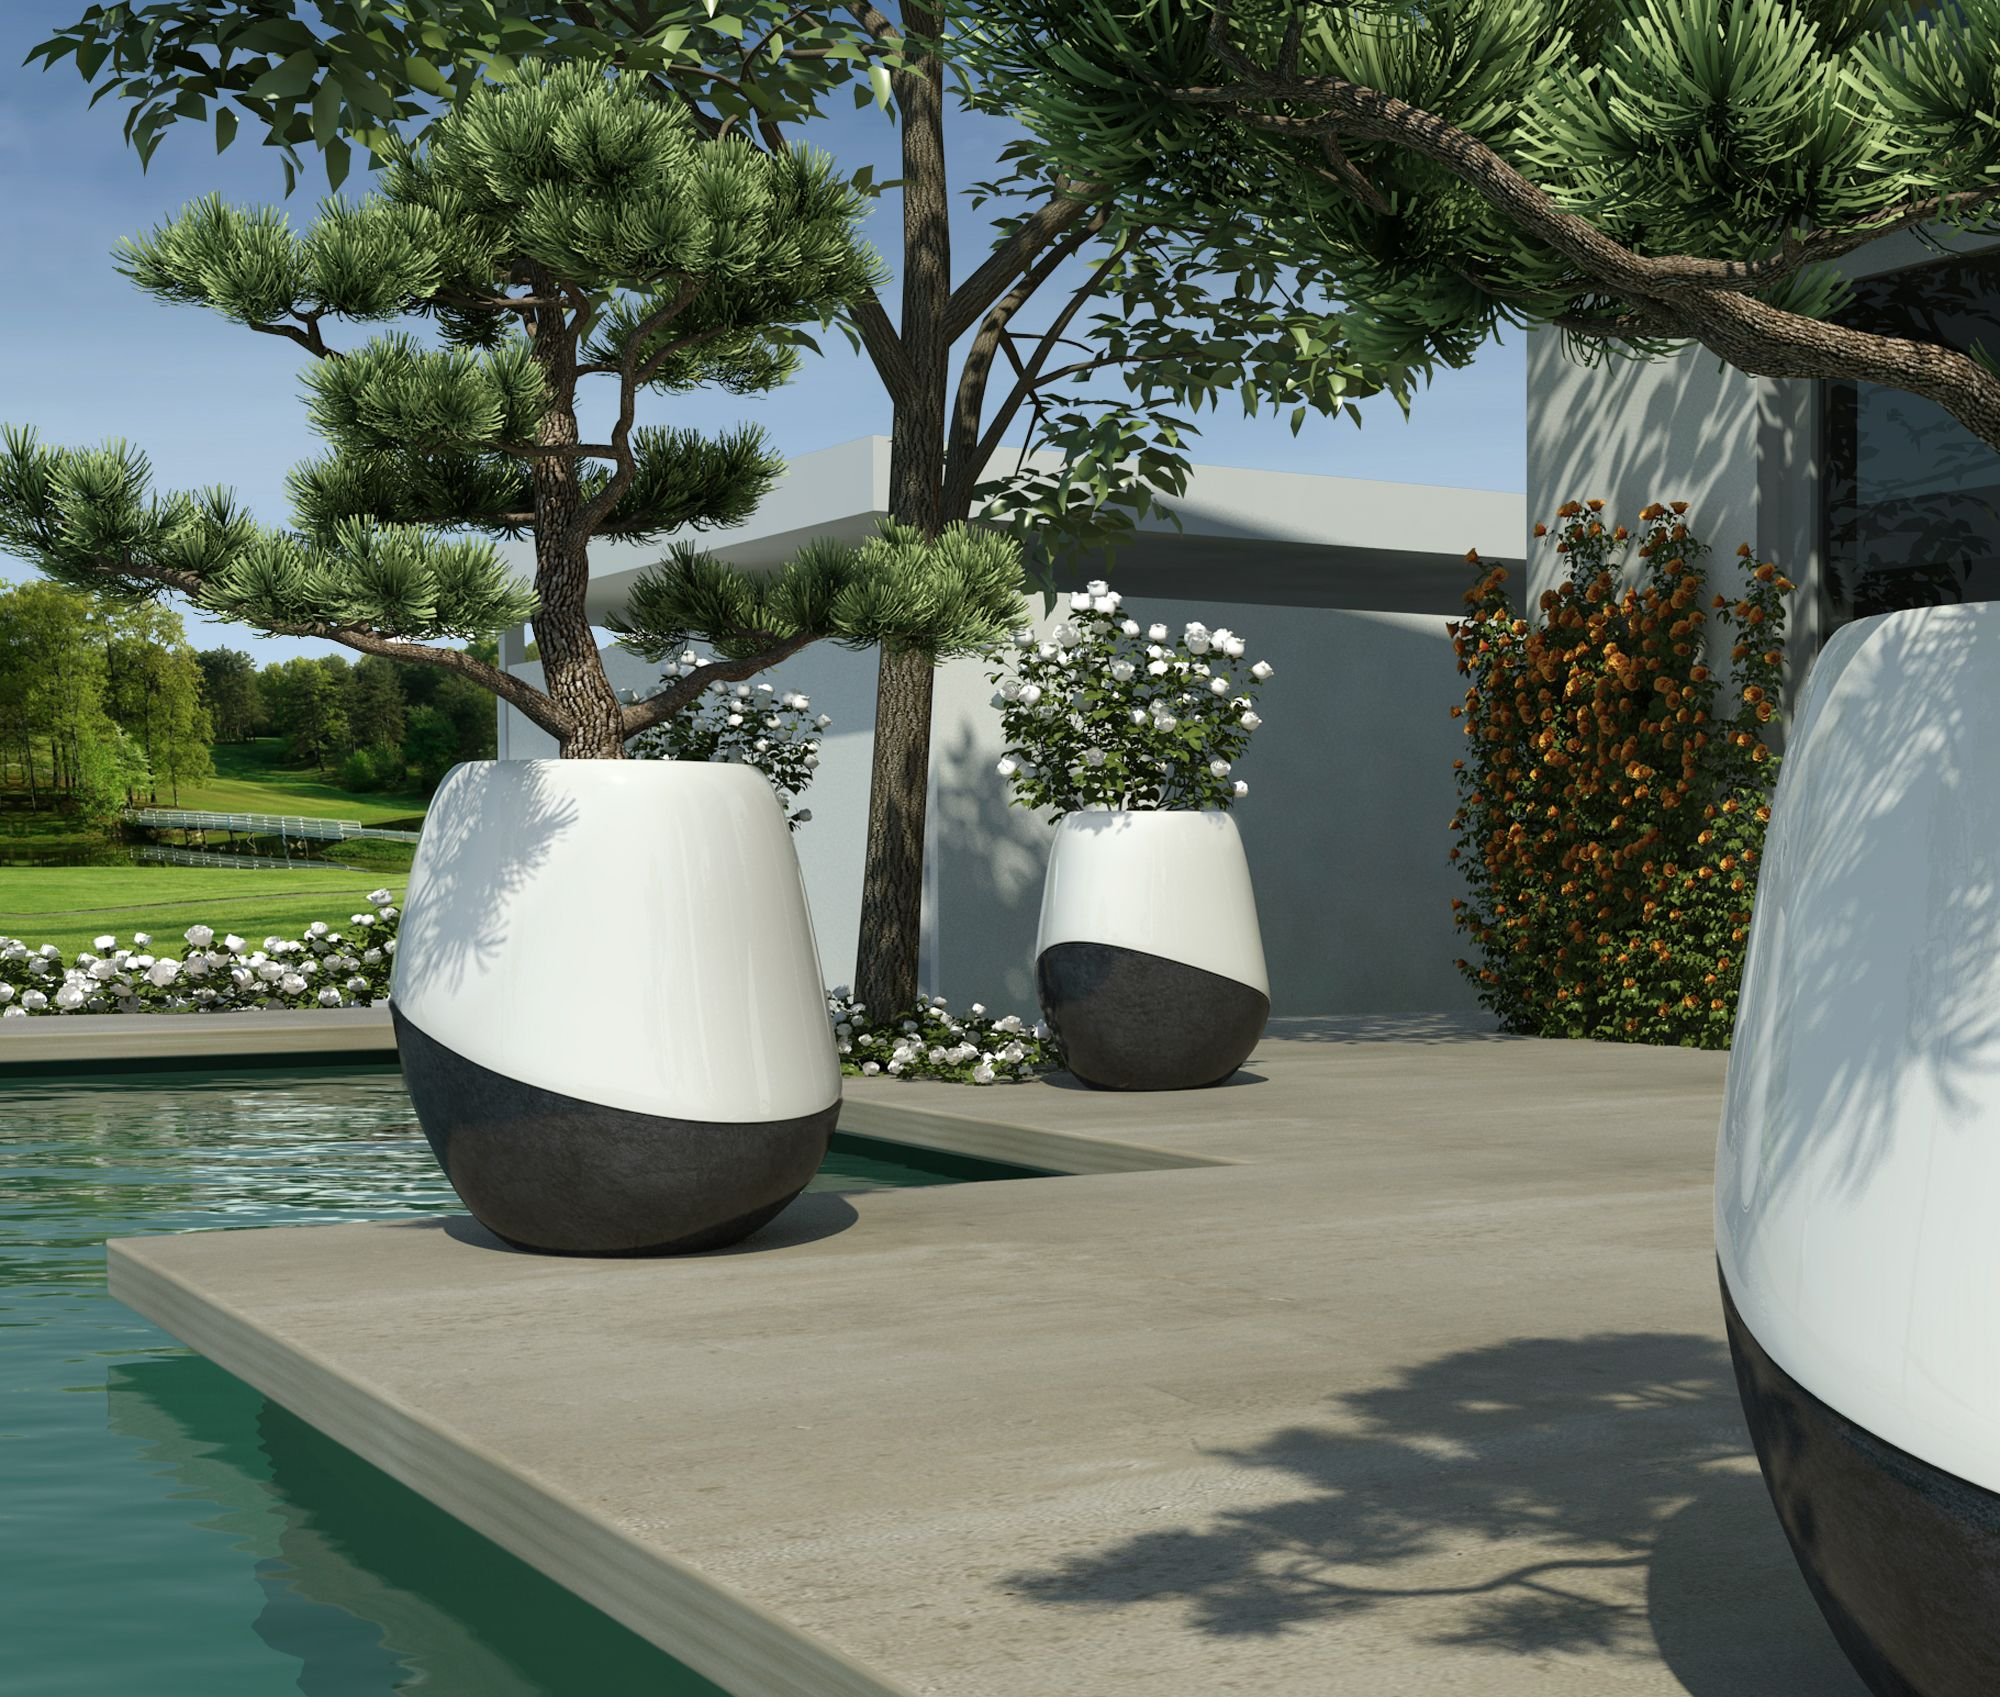 outdoor i round design landscaping awesome extra landscape ideas vases scheme planter inspiration pot planters exterior decor of